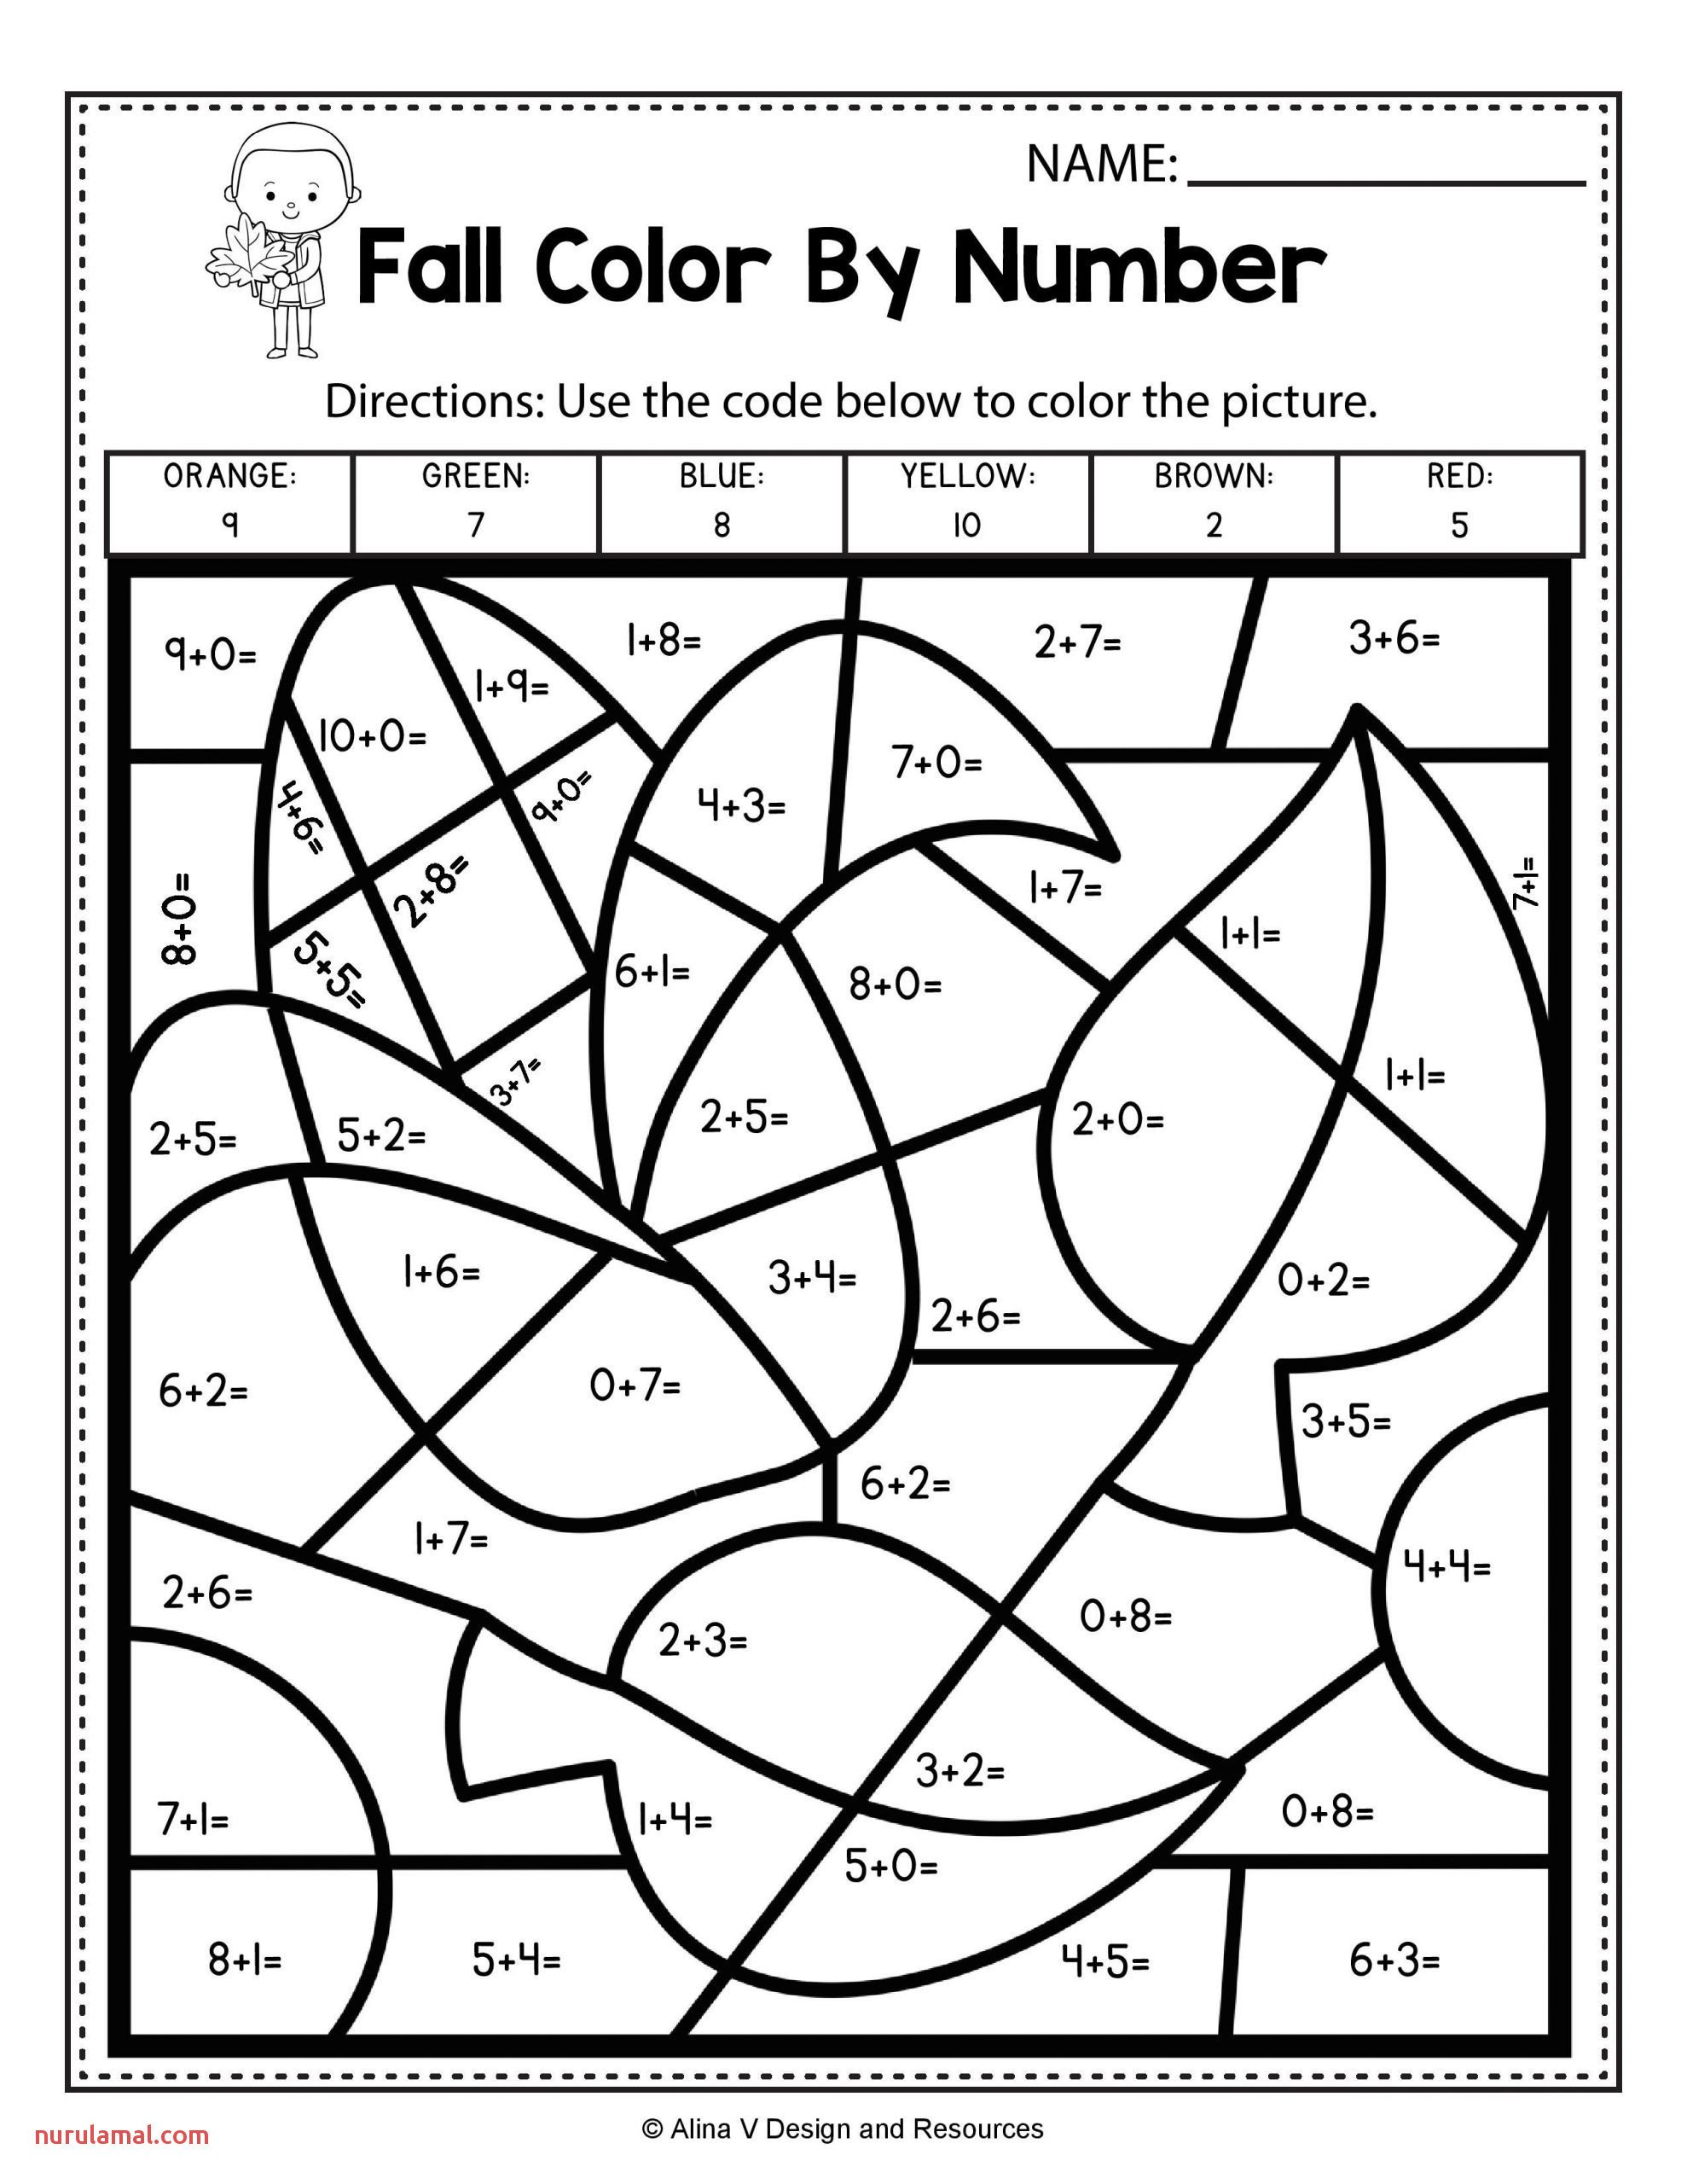 Abeka 3rd Grade Math Worksheets Abeka Worksheets for K4 Printable and Activities 4th Grade